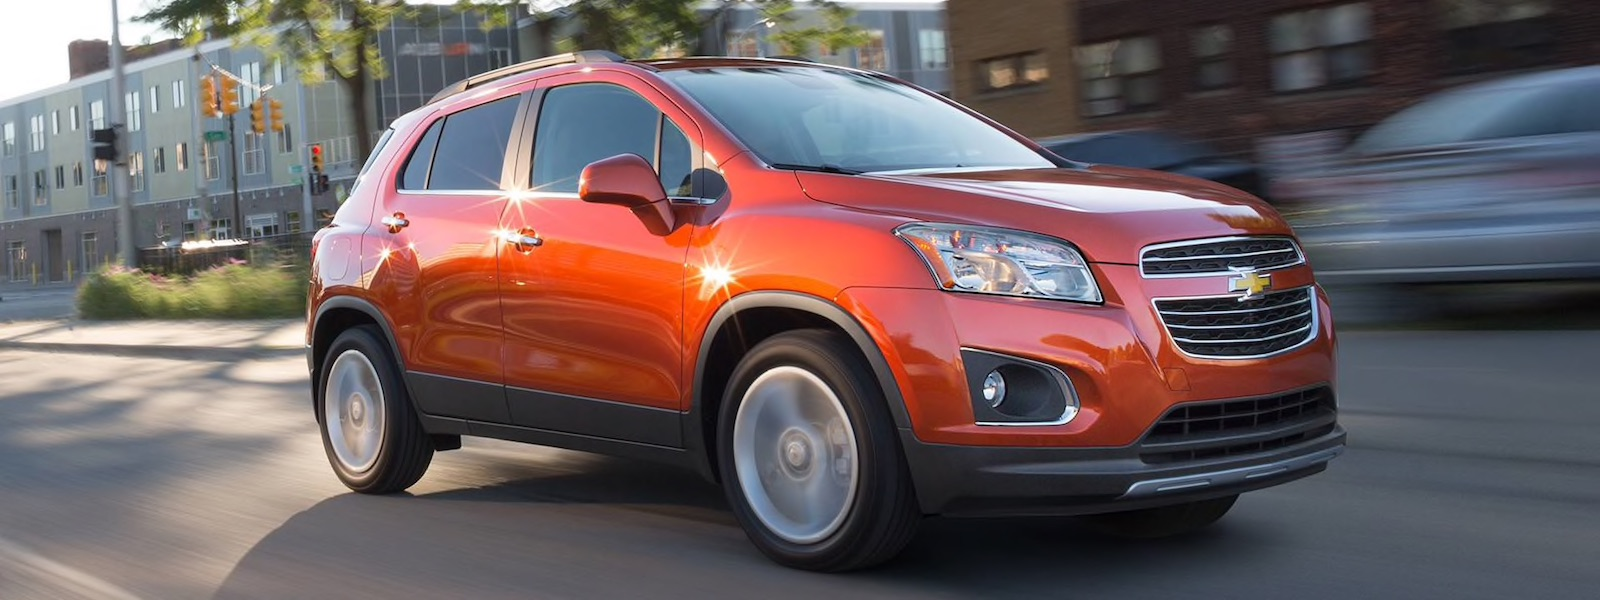 2016 Chevy Trax driving fast on the road